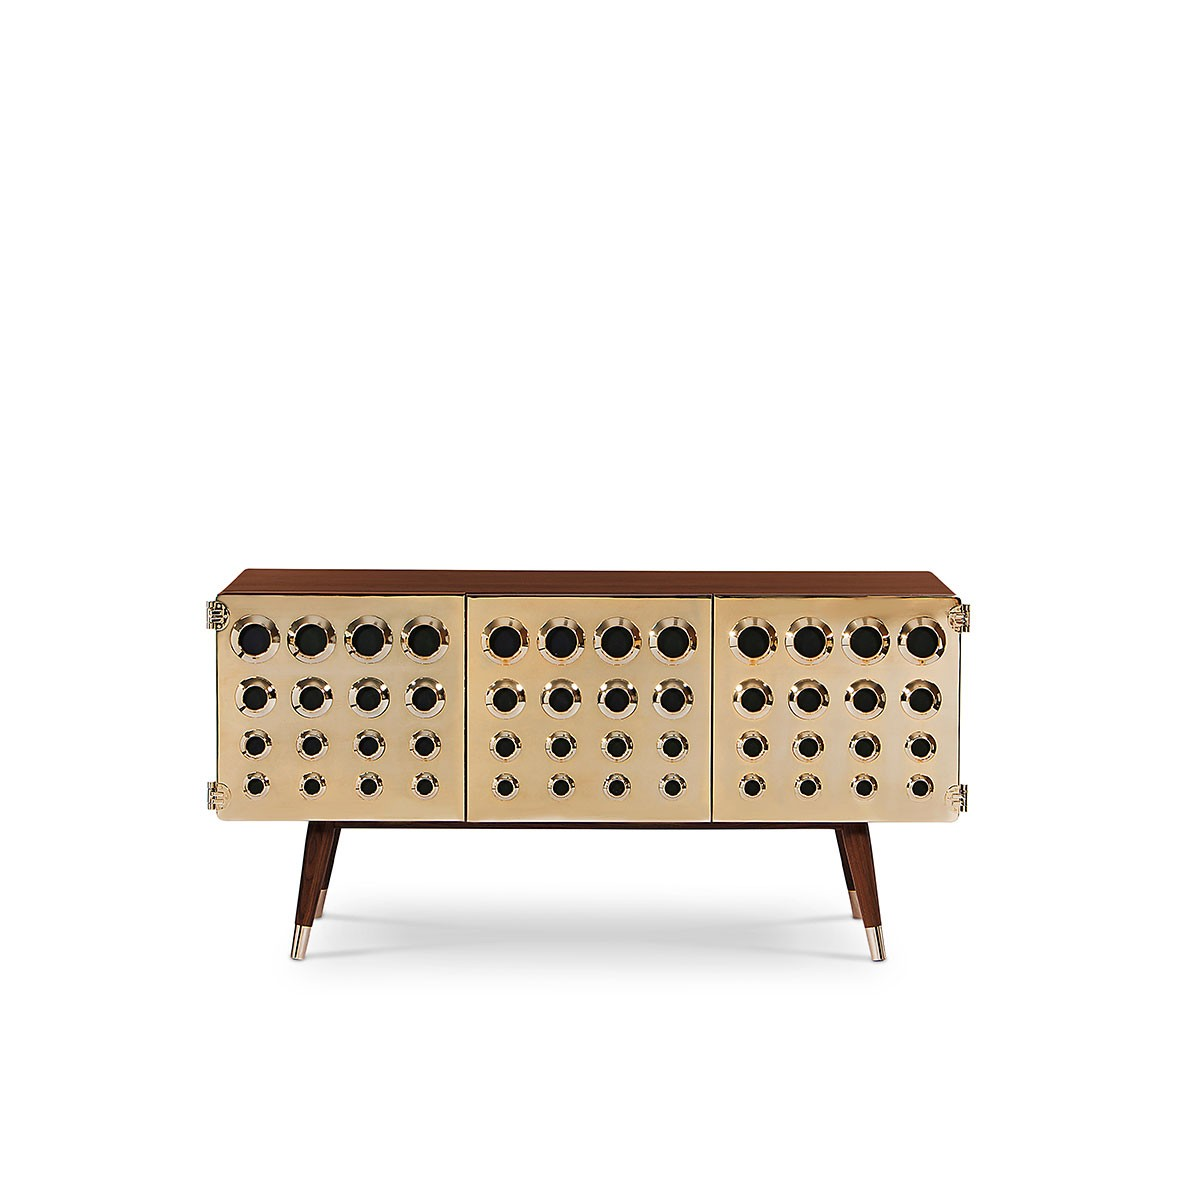 Trendy Sideboards For 2019 (Part II)